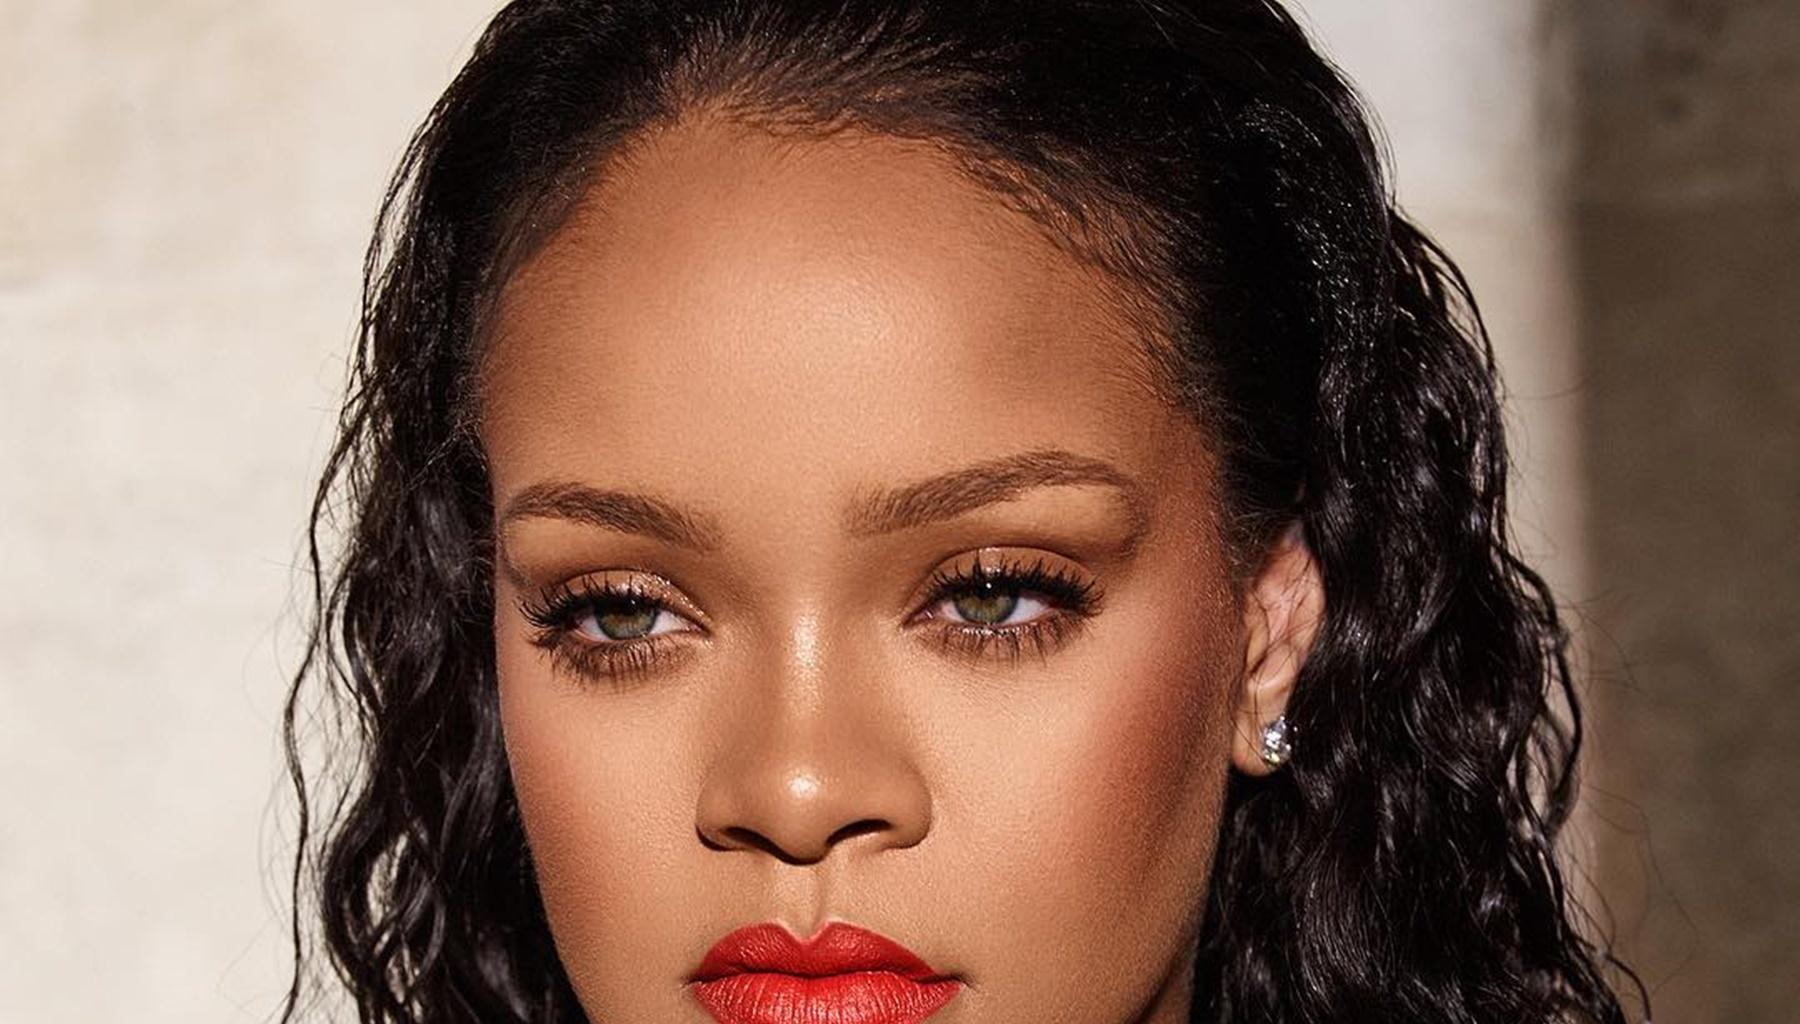 Rihanna Leaves Little To The Imagination In Sizzling New Photos Promoting Lingerie Collection -- Can Chris Brown And Hassan Jameel Keep Up With Her Appeal?